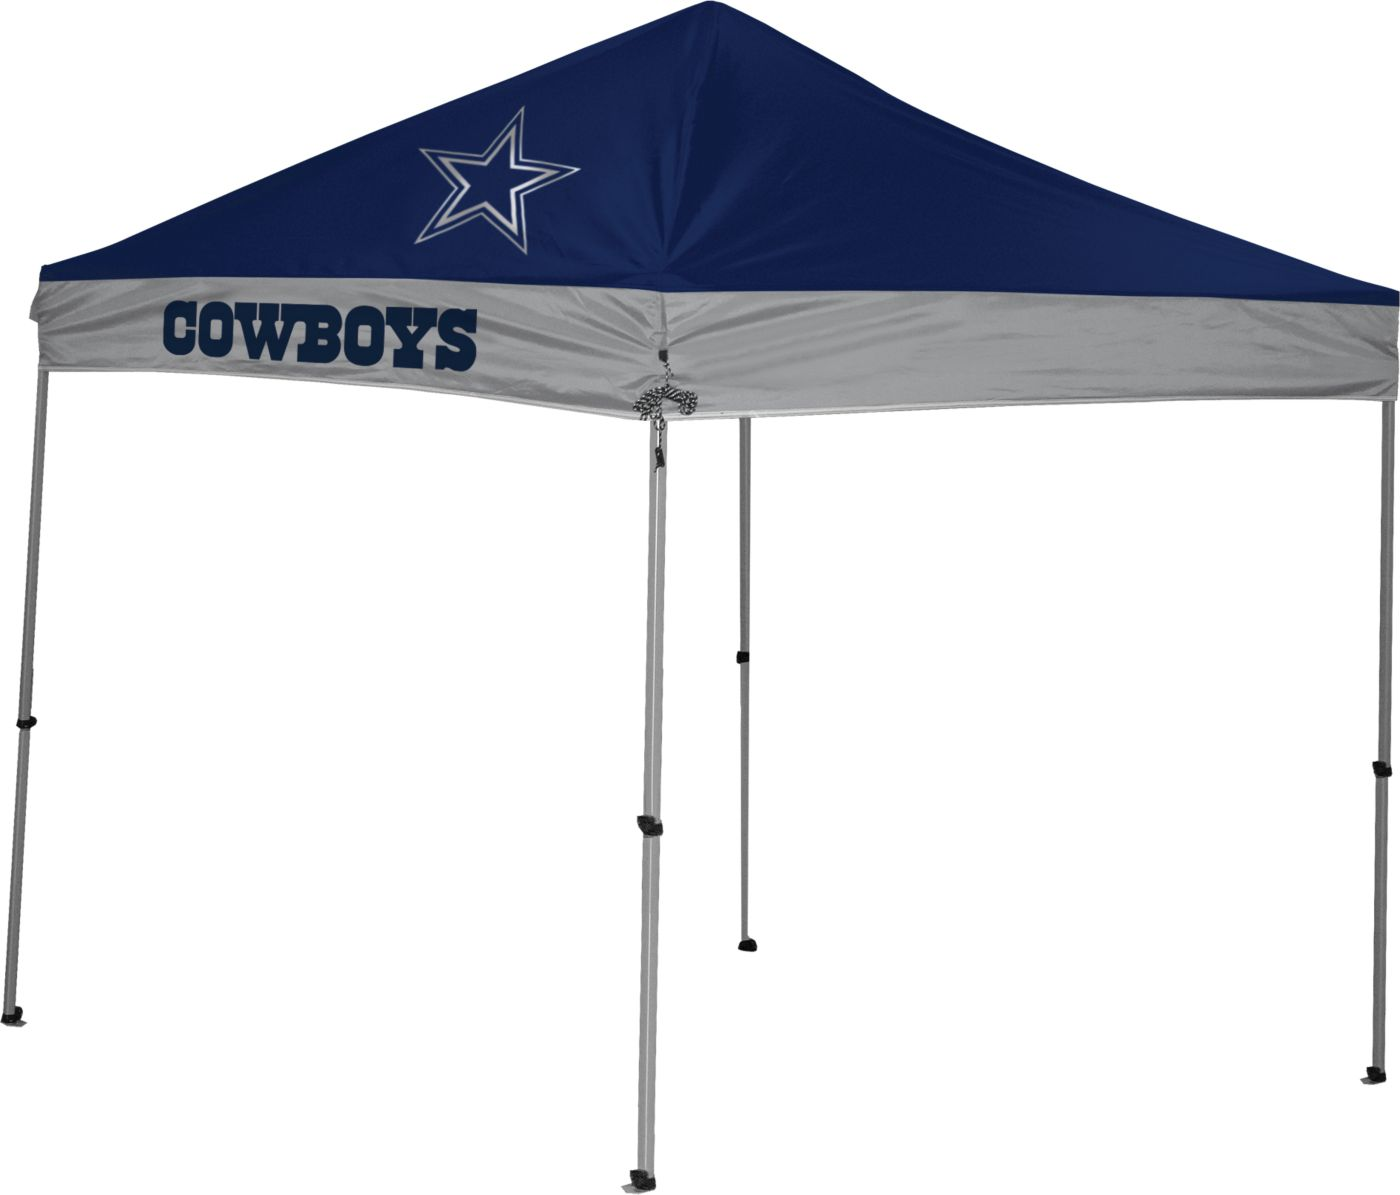 Rawlings Dallas Cowboys 9'x9' Canopy Tent